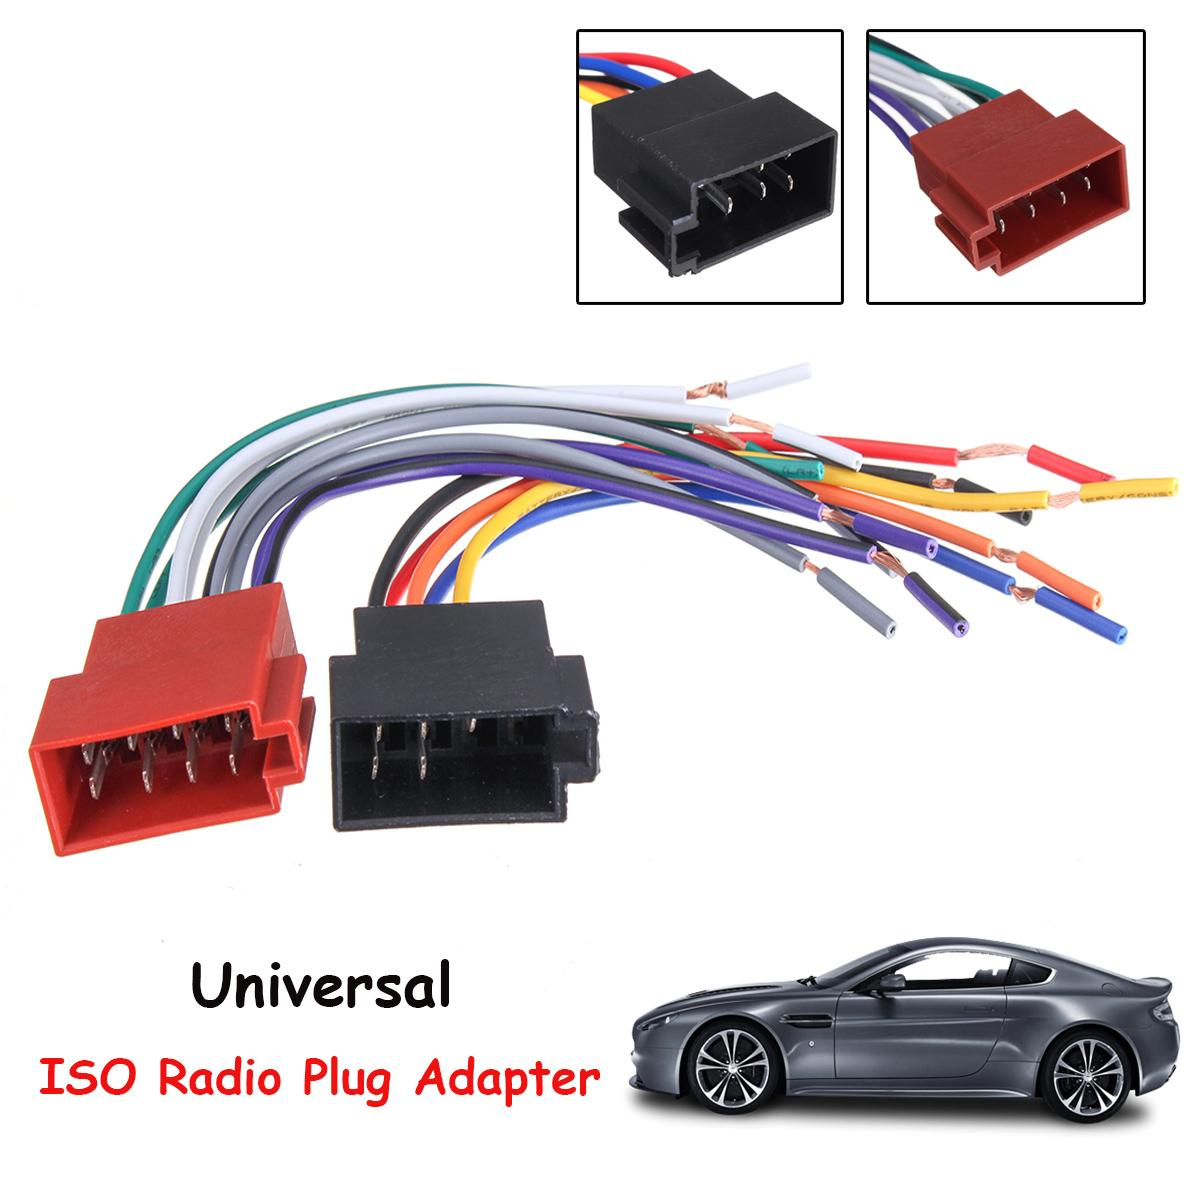 hight resolution of 2019 universal car stereo female iso radio plug adapter wiring cable stereo harness from xiaopingguoma 7 04 dhgate com